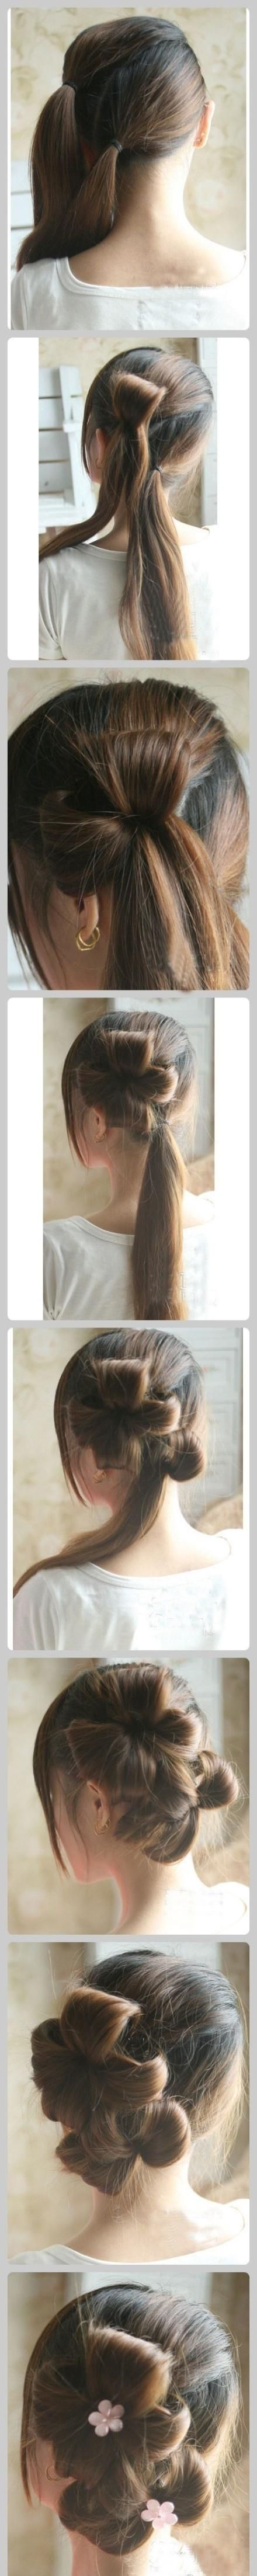 #DIY #Ribbon #Bun #Hairstyle